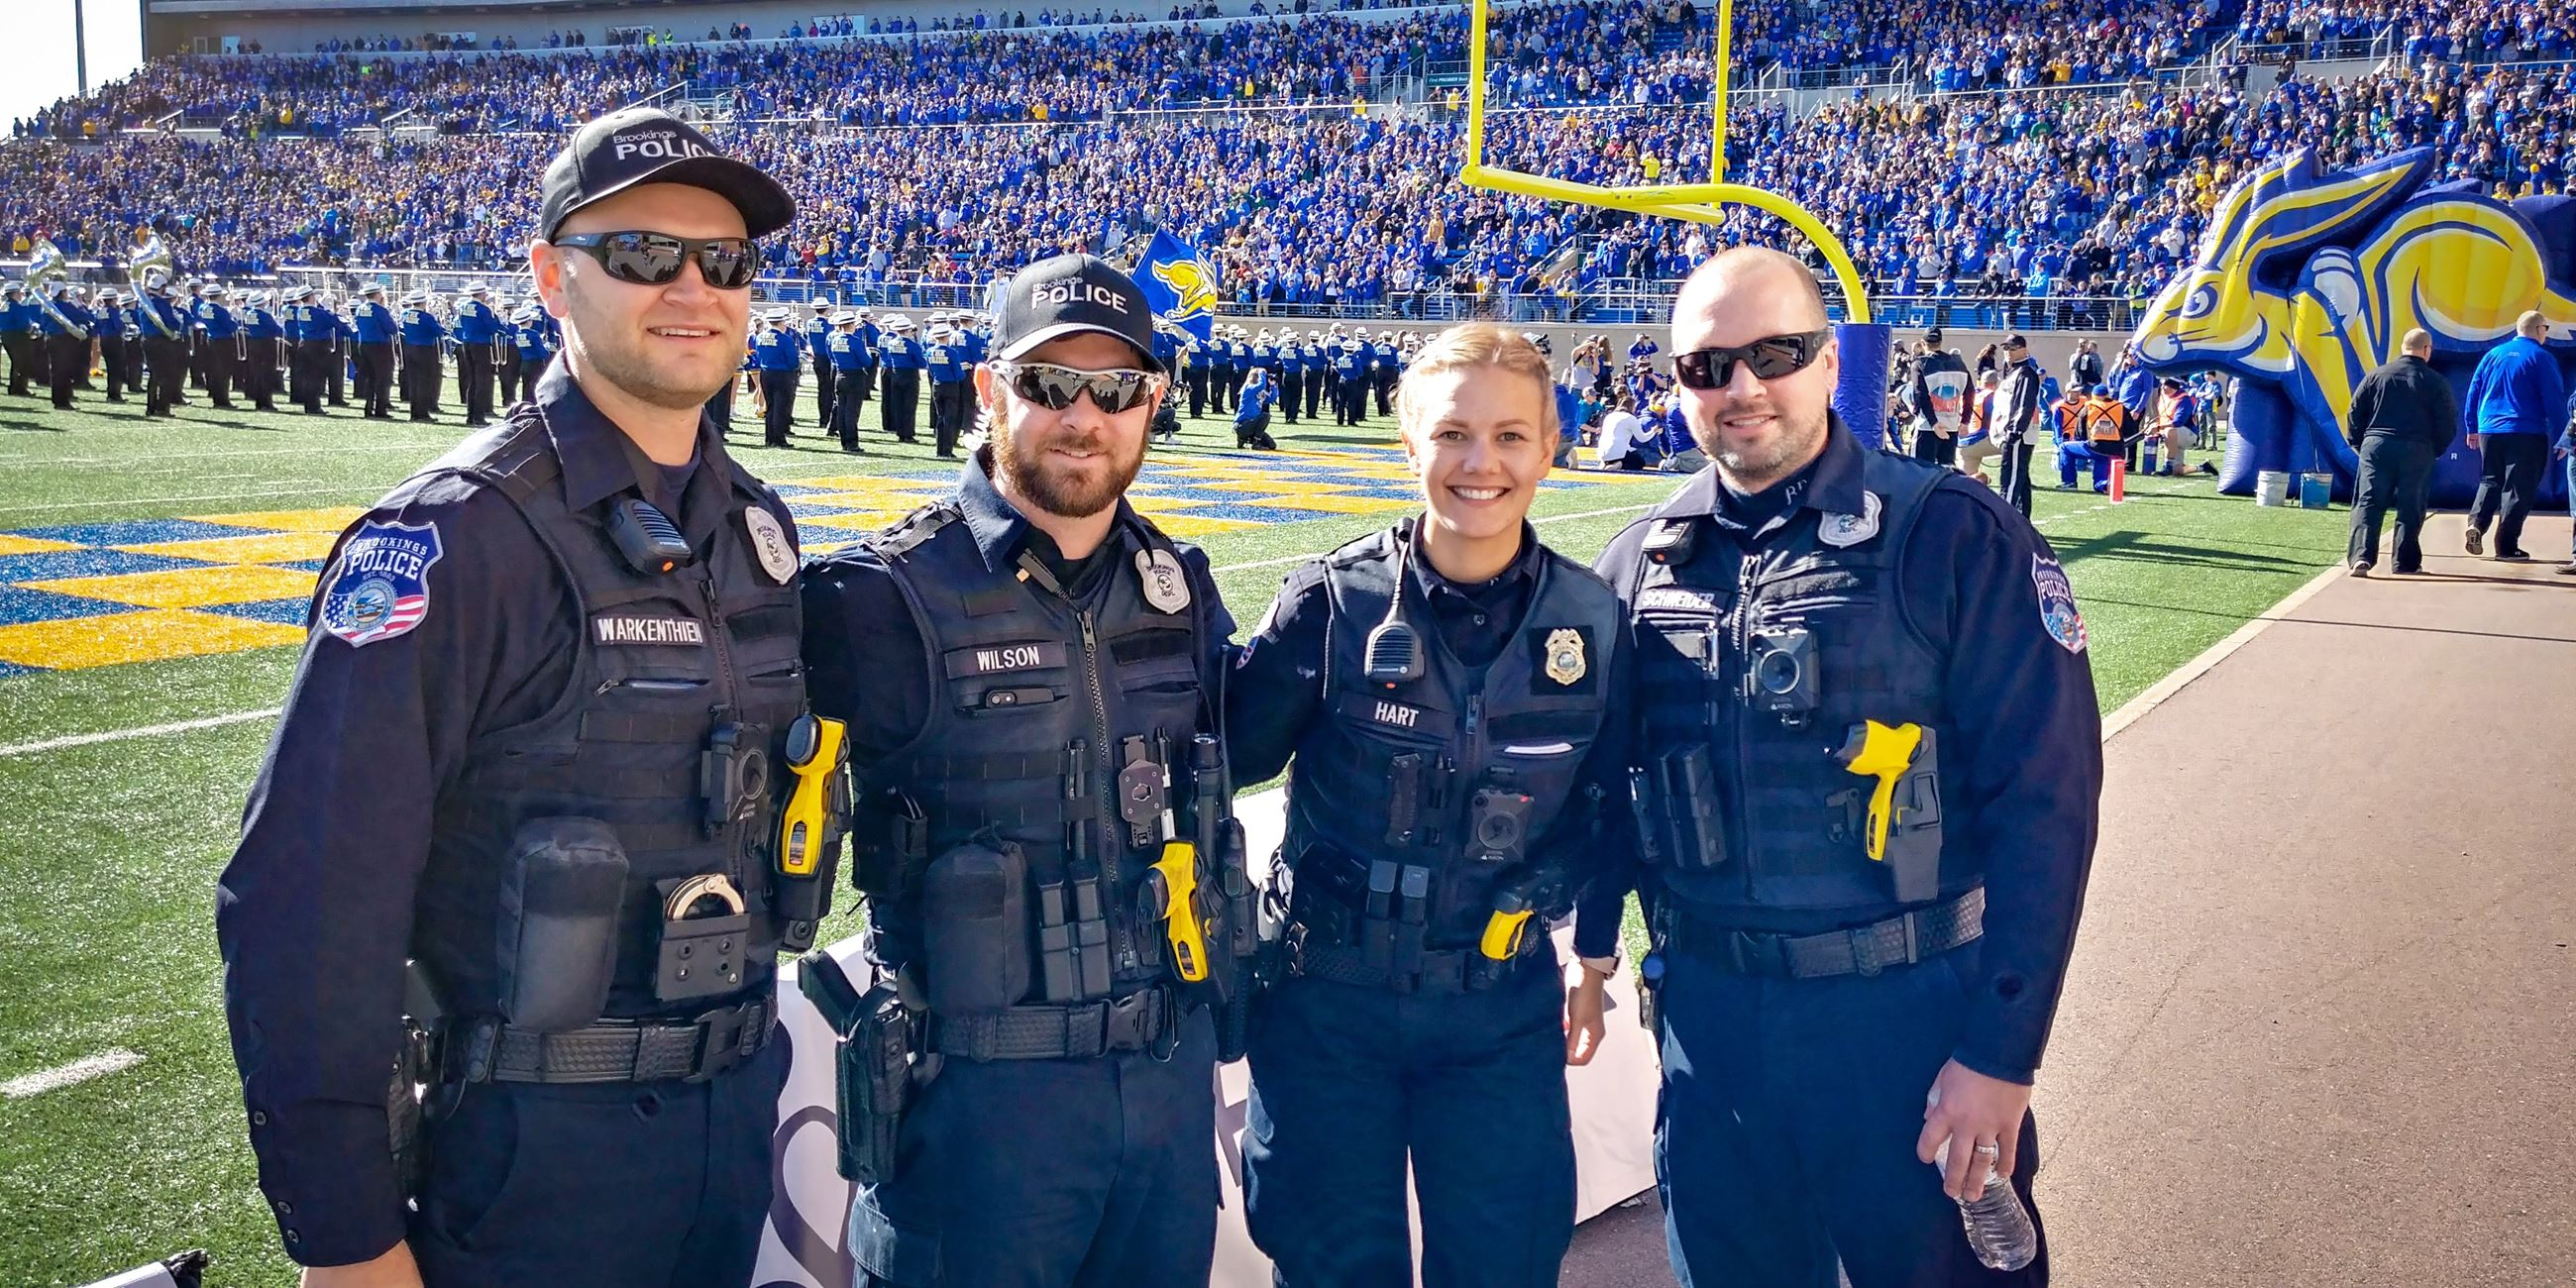 Officers at SDSU Football game